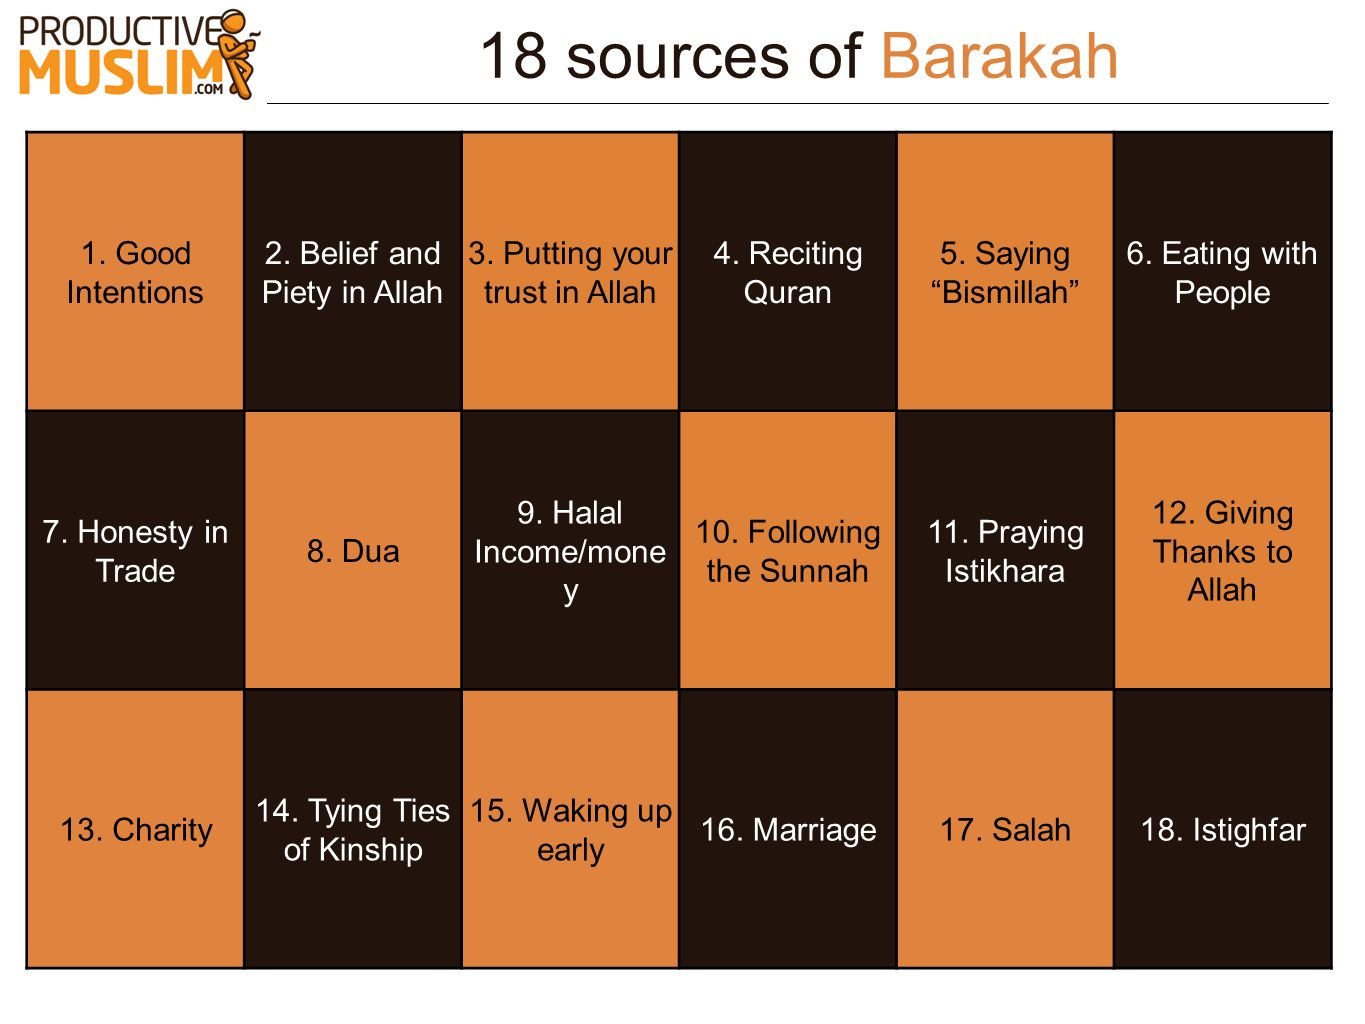 18 sources of Barakah 1. Good Intentions 2. Belief and Piety in Allah 3. Putting your trust in Allah 4. Reciting Quran 5. Saying Bismillah 6. Eating w